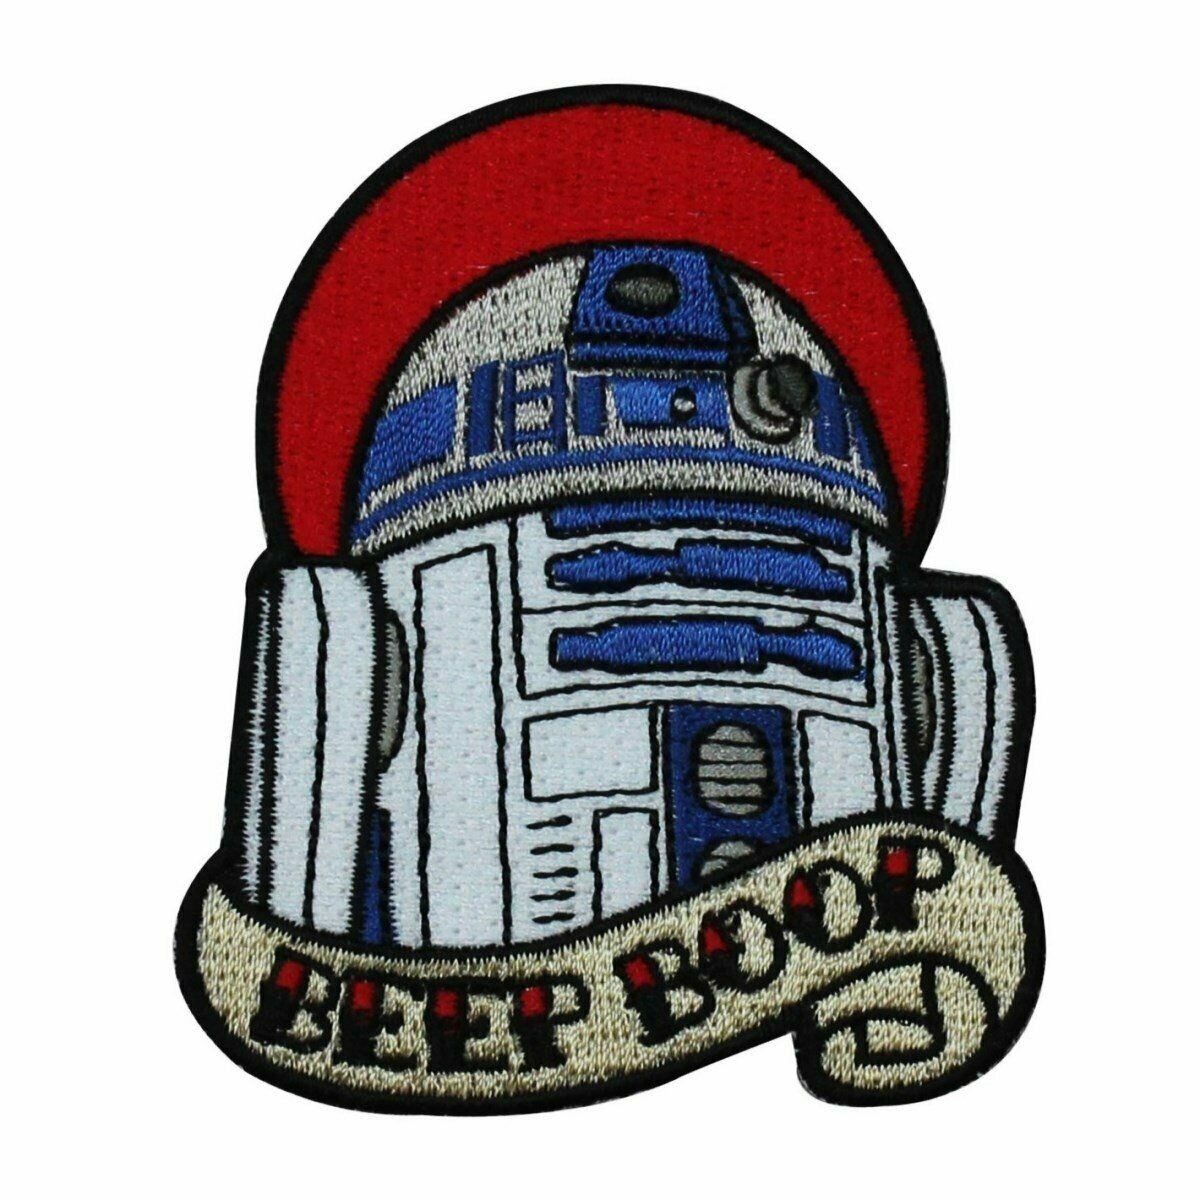 Disney Star Wars Love R2 D2 Beep Boop Patch Officially Licensed Iron On Applique